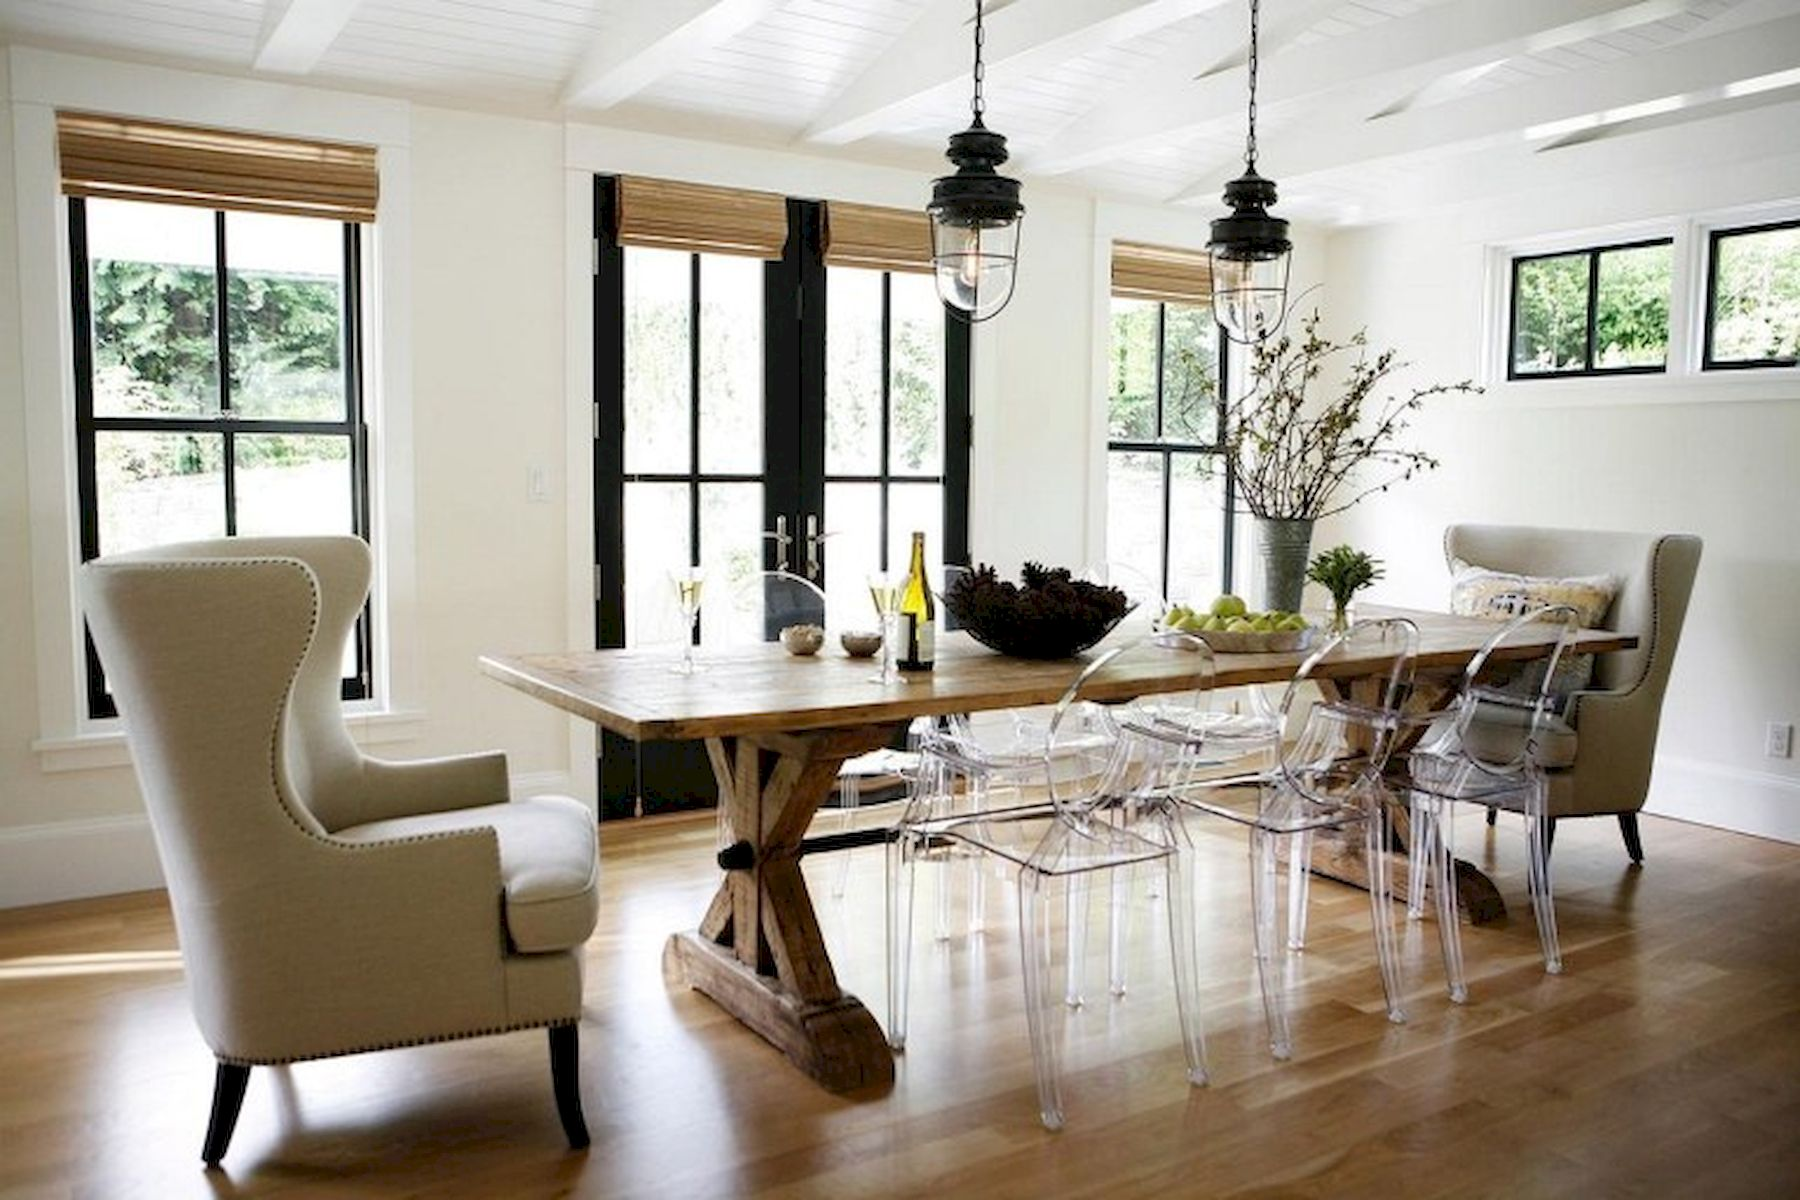 40 Adorable Farmhouse Dining Room Design and Decor Ideas (34)